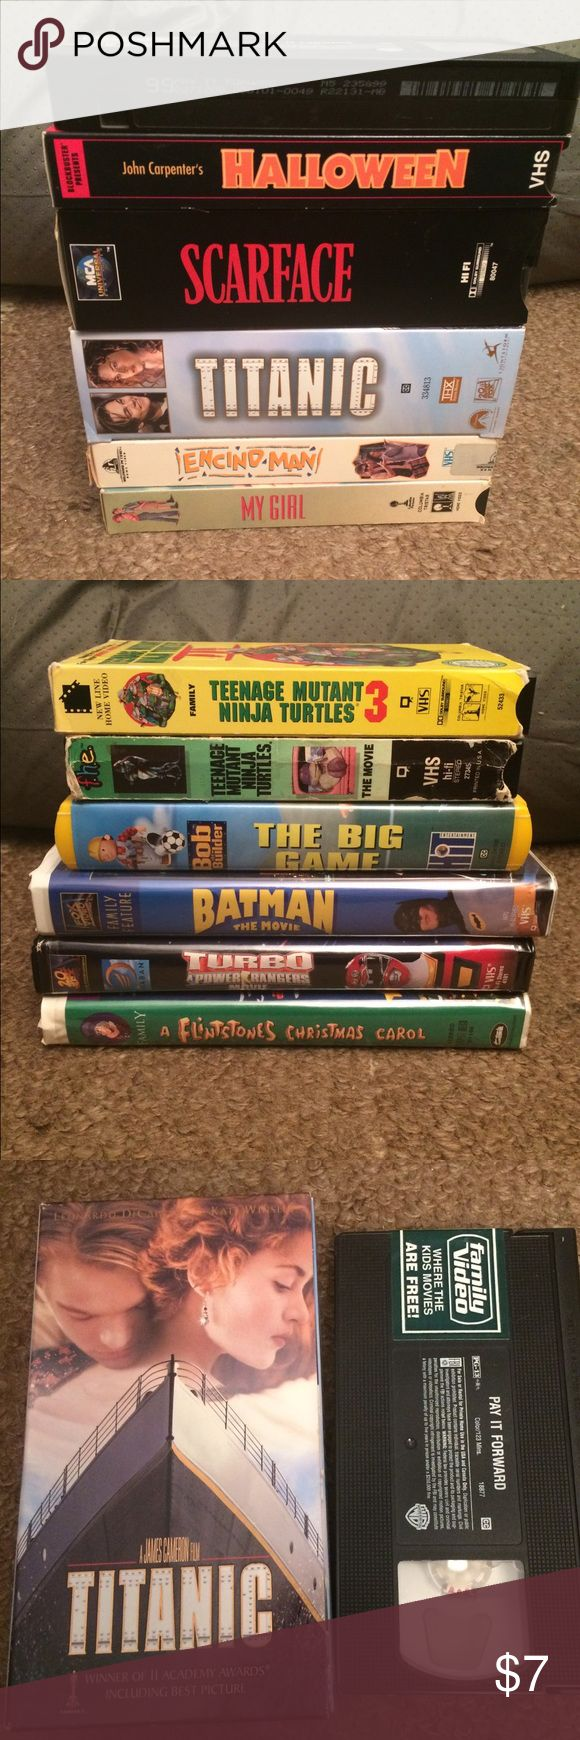 12 VHS Bundle Ninja turtles, batman, scarface, etc All working condition some watched once, price includes all 12 tapes, teenage mutant ninja turtles movie 1 and 3, batman the movie, the flintstones a Christmas carol, bob the builder, the power rangers movie, scarface, titanic, my girl, Encino man, pay it forward, and john carpenters Halloween Batman Other